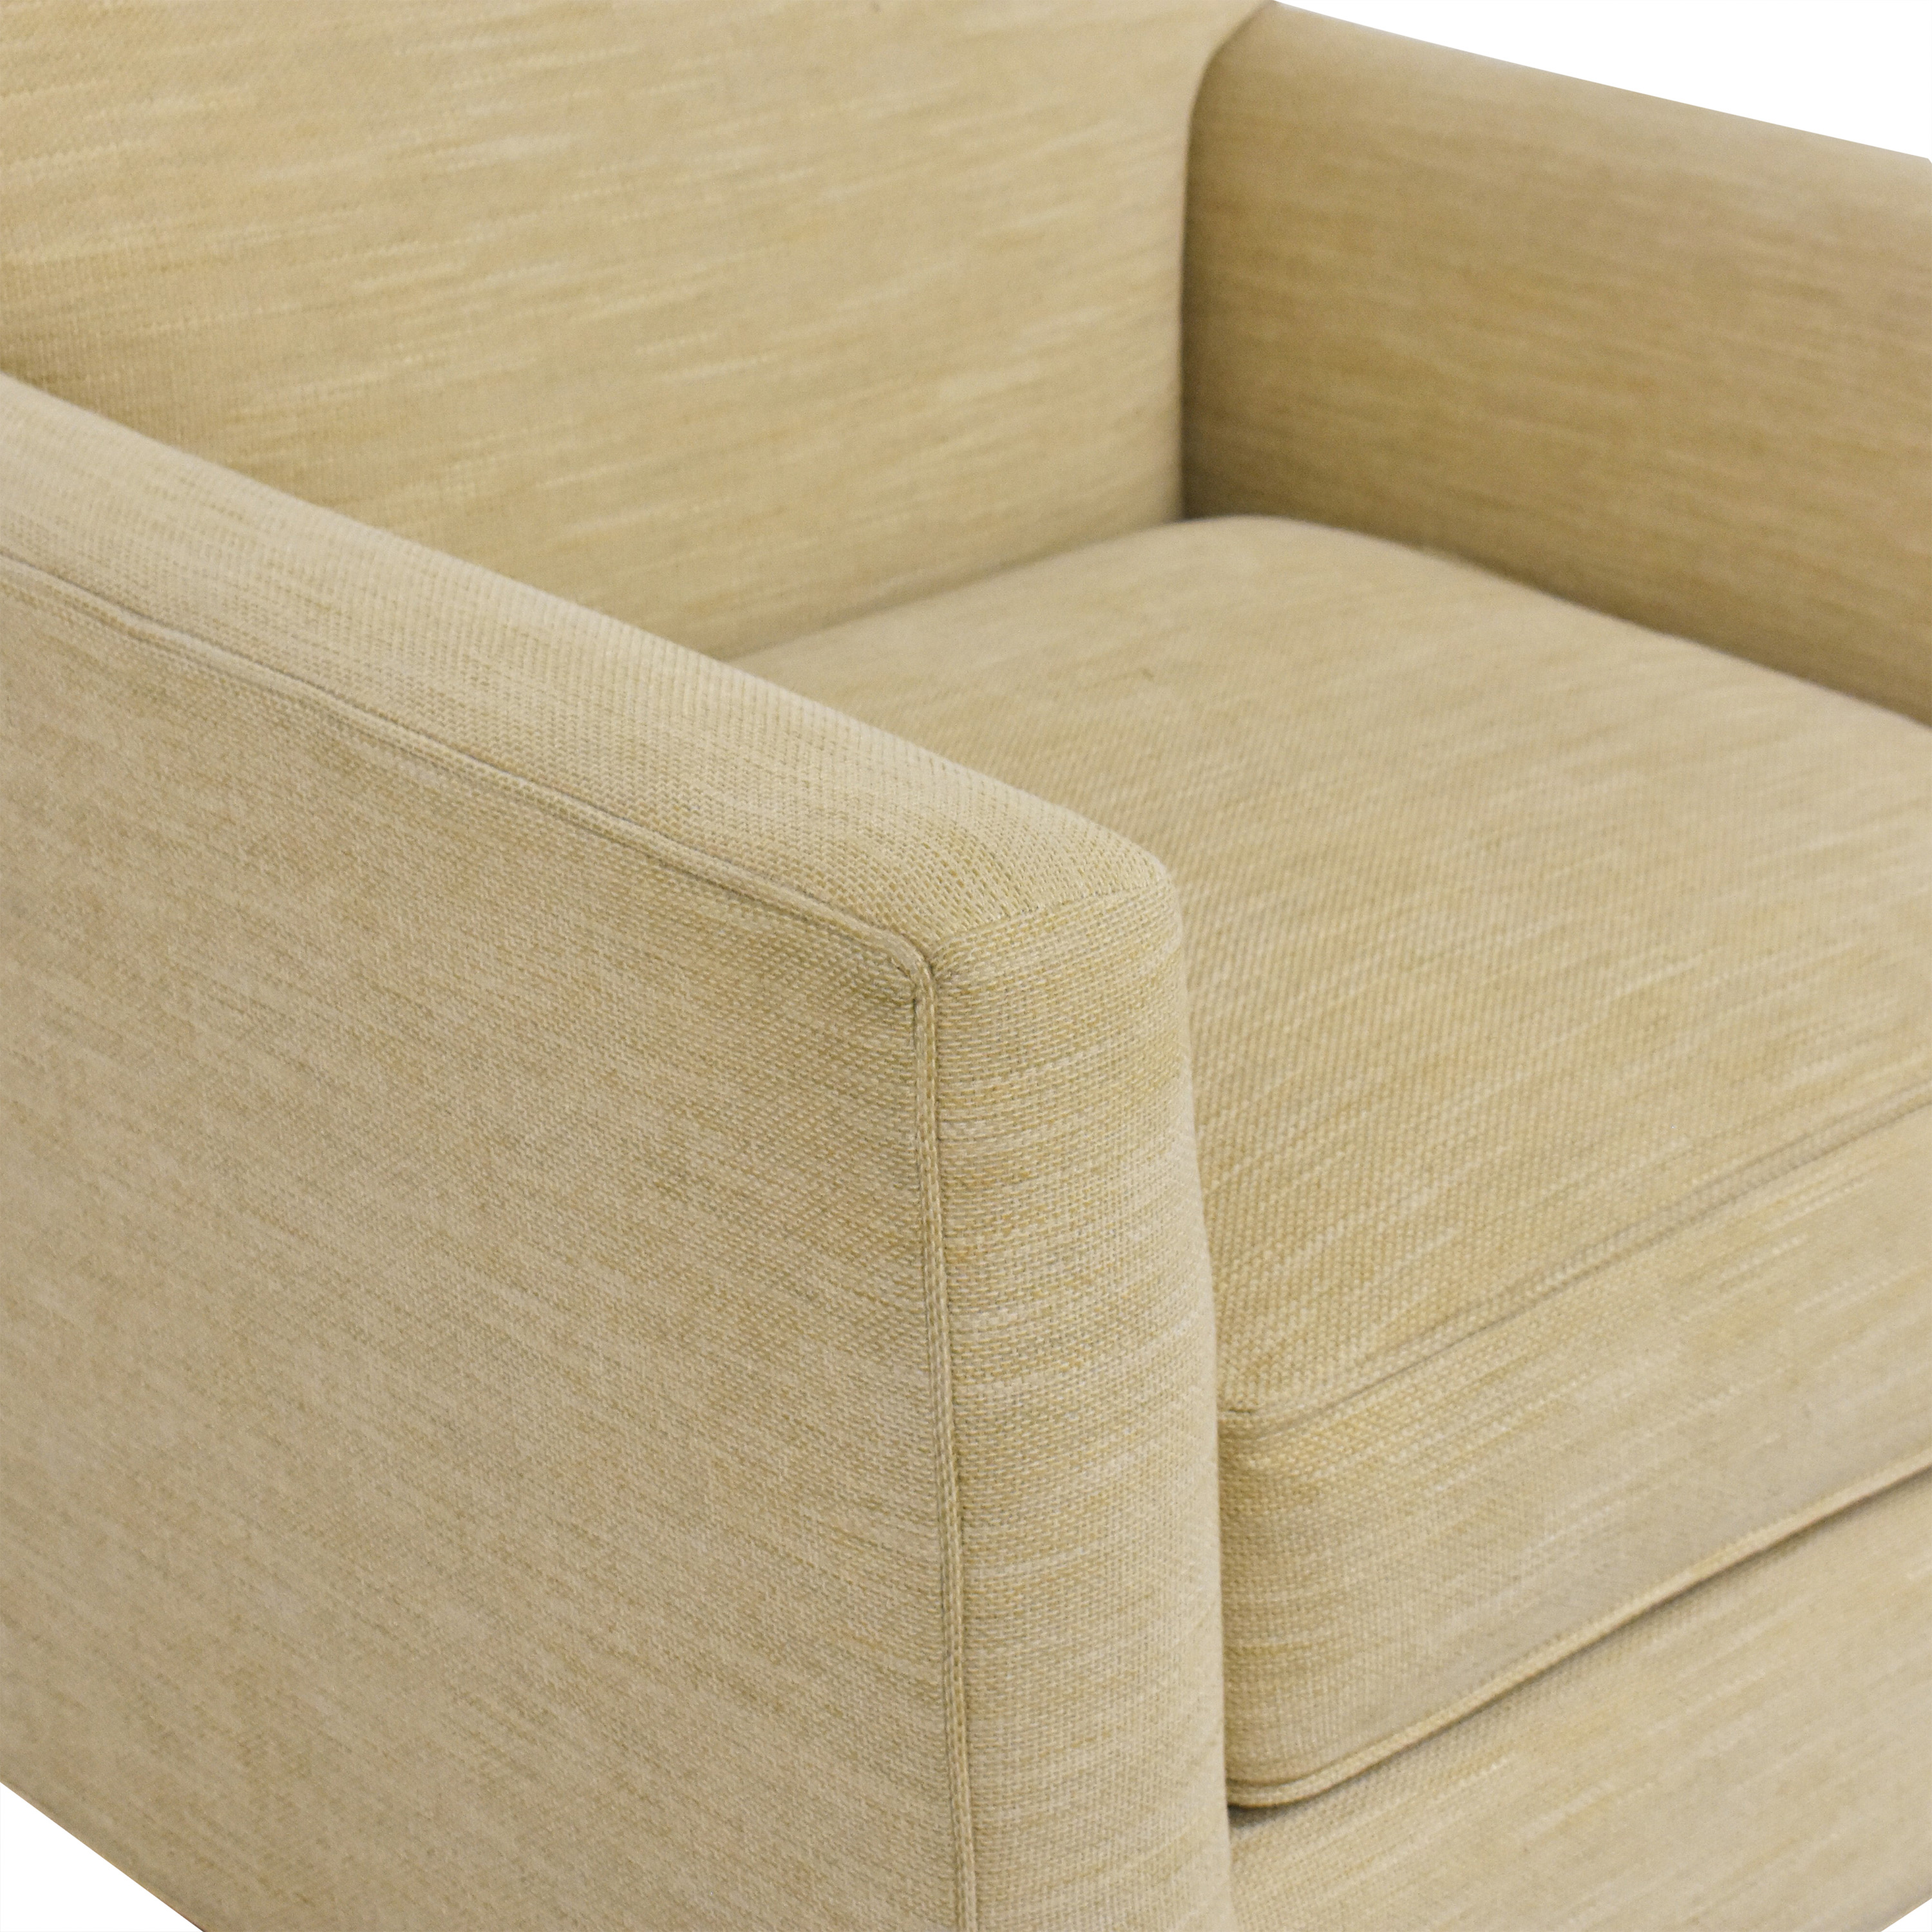 Crate & Barrel Crate & Barrel Hennessy Chair discount